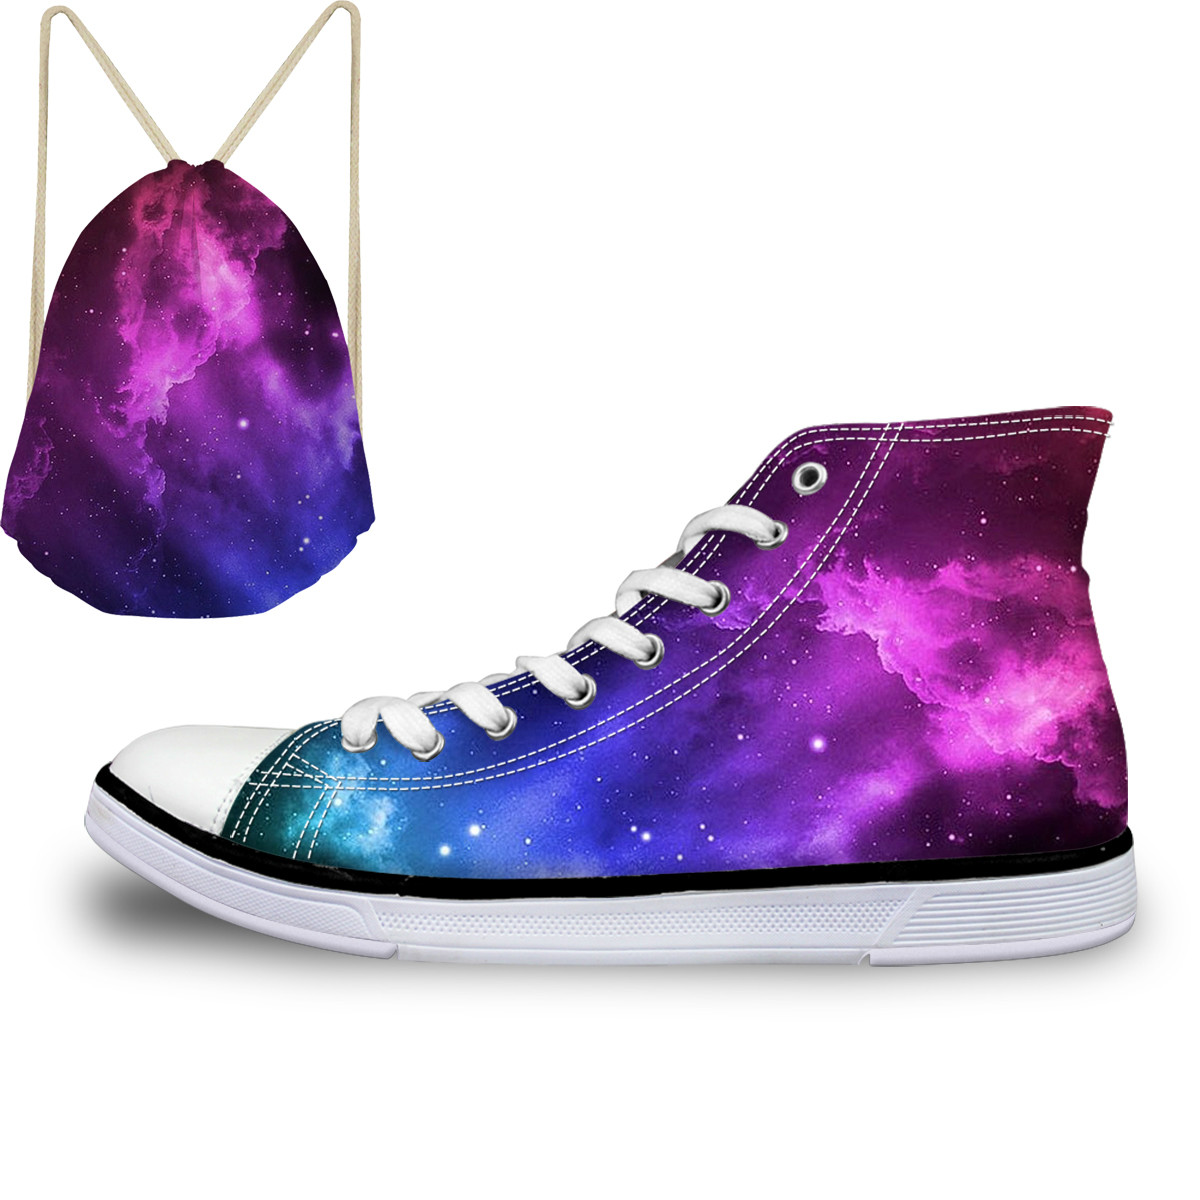 ThiKin Pretty Colorful Galaxy Stars Print Canvas Shoes For Women Girls Ladies Casual High Top Vulcanize Shoes Lace Up Sneaker